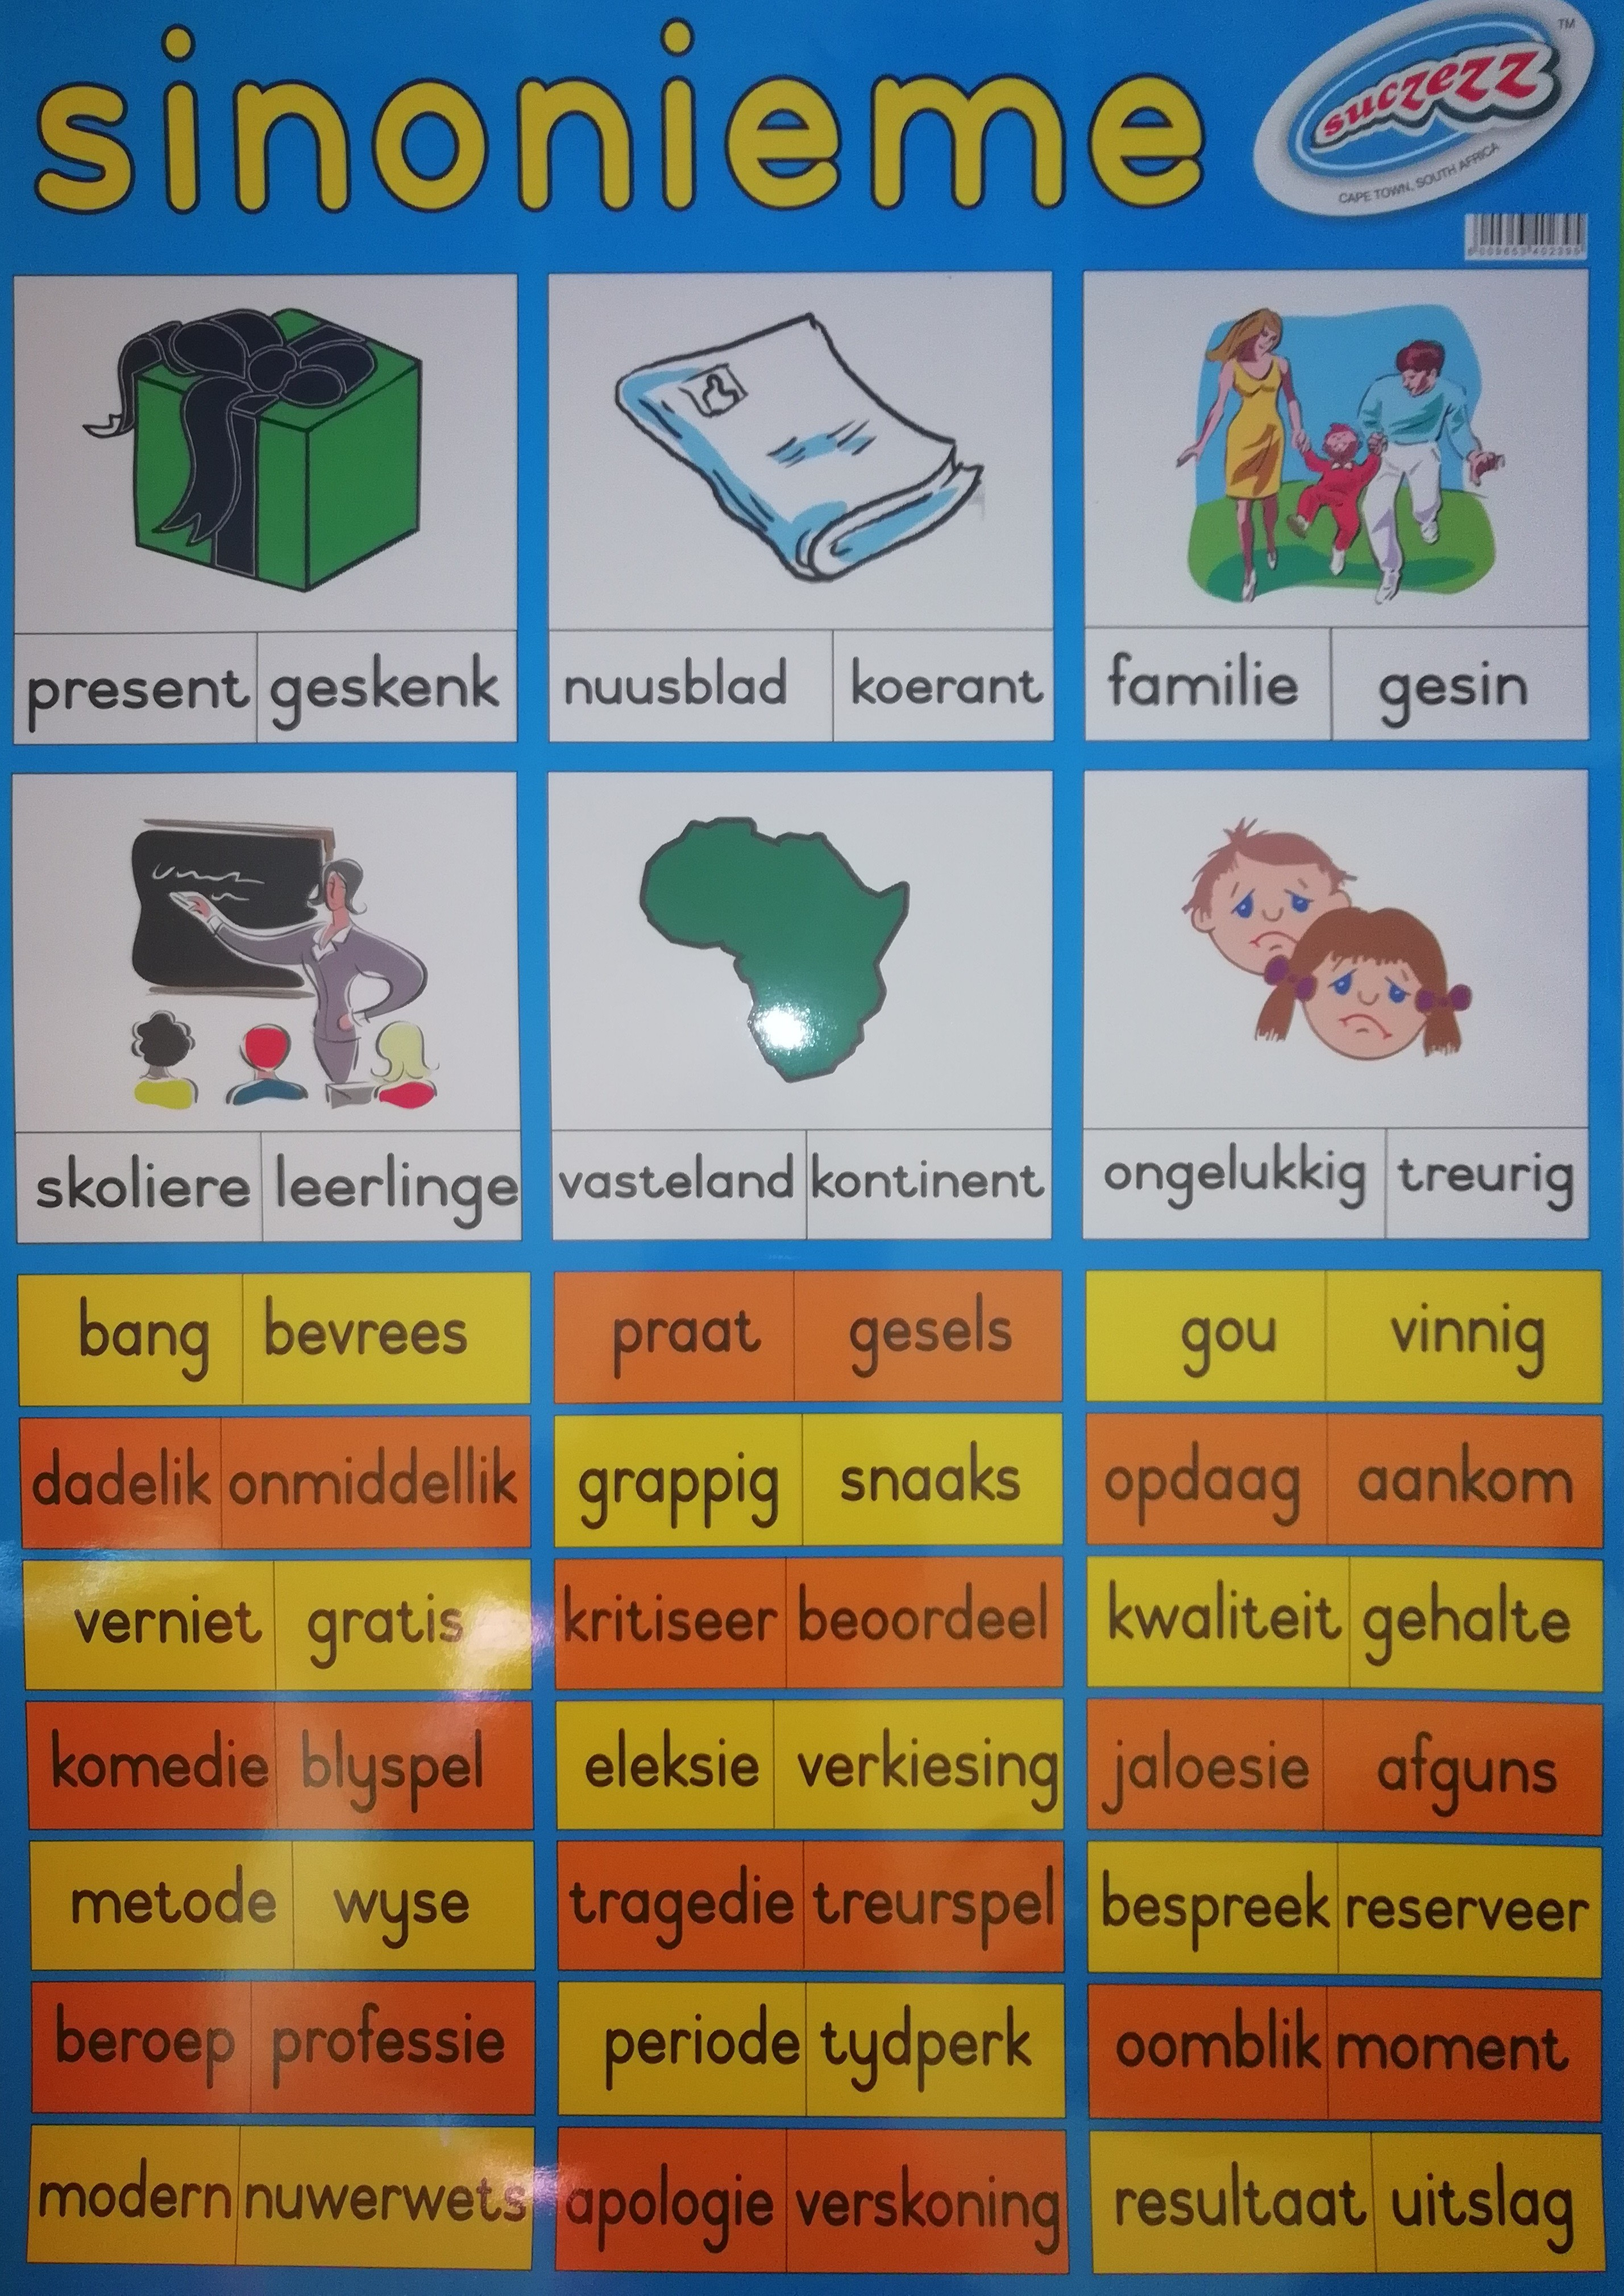 Sucezz Educational Wall Chart / Poster - Afrikaans - Sinonieme (Synonyms)